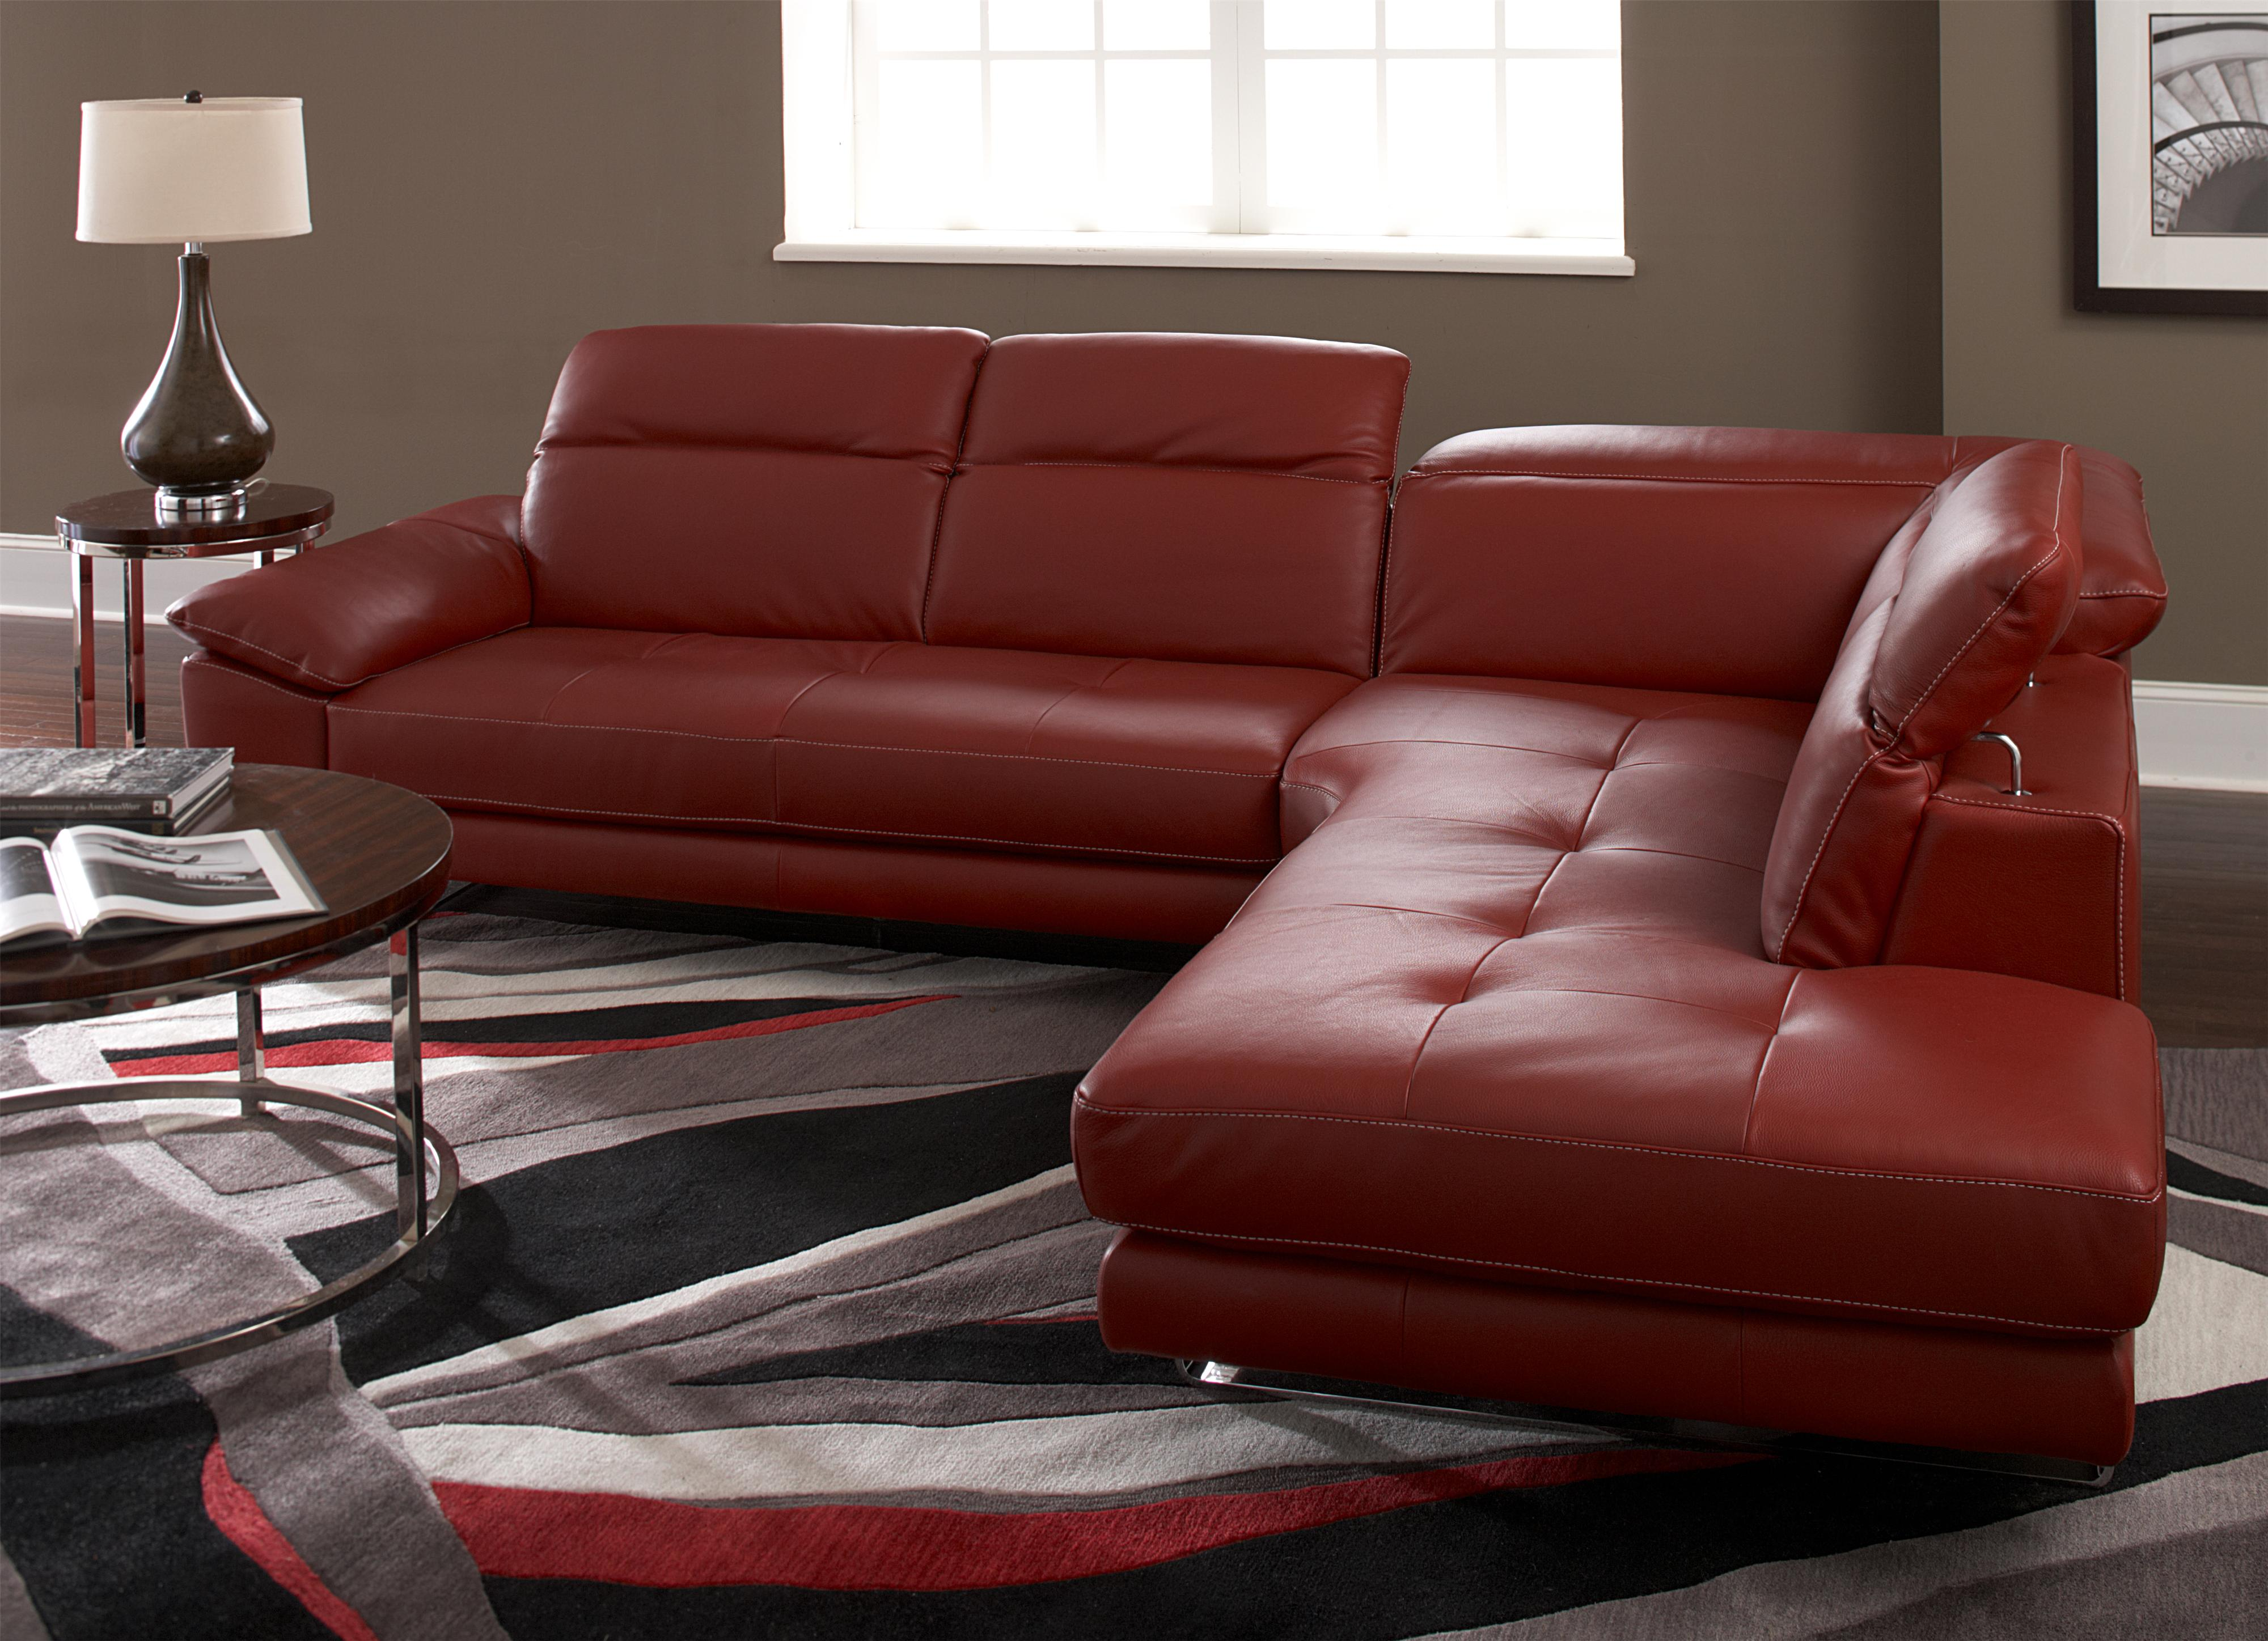 Natuzzi Editions B796 Two Piece Sectional Sofa with LAF Bumper and